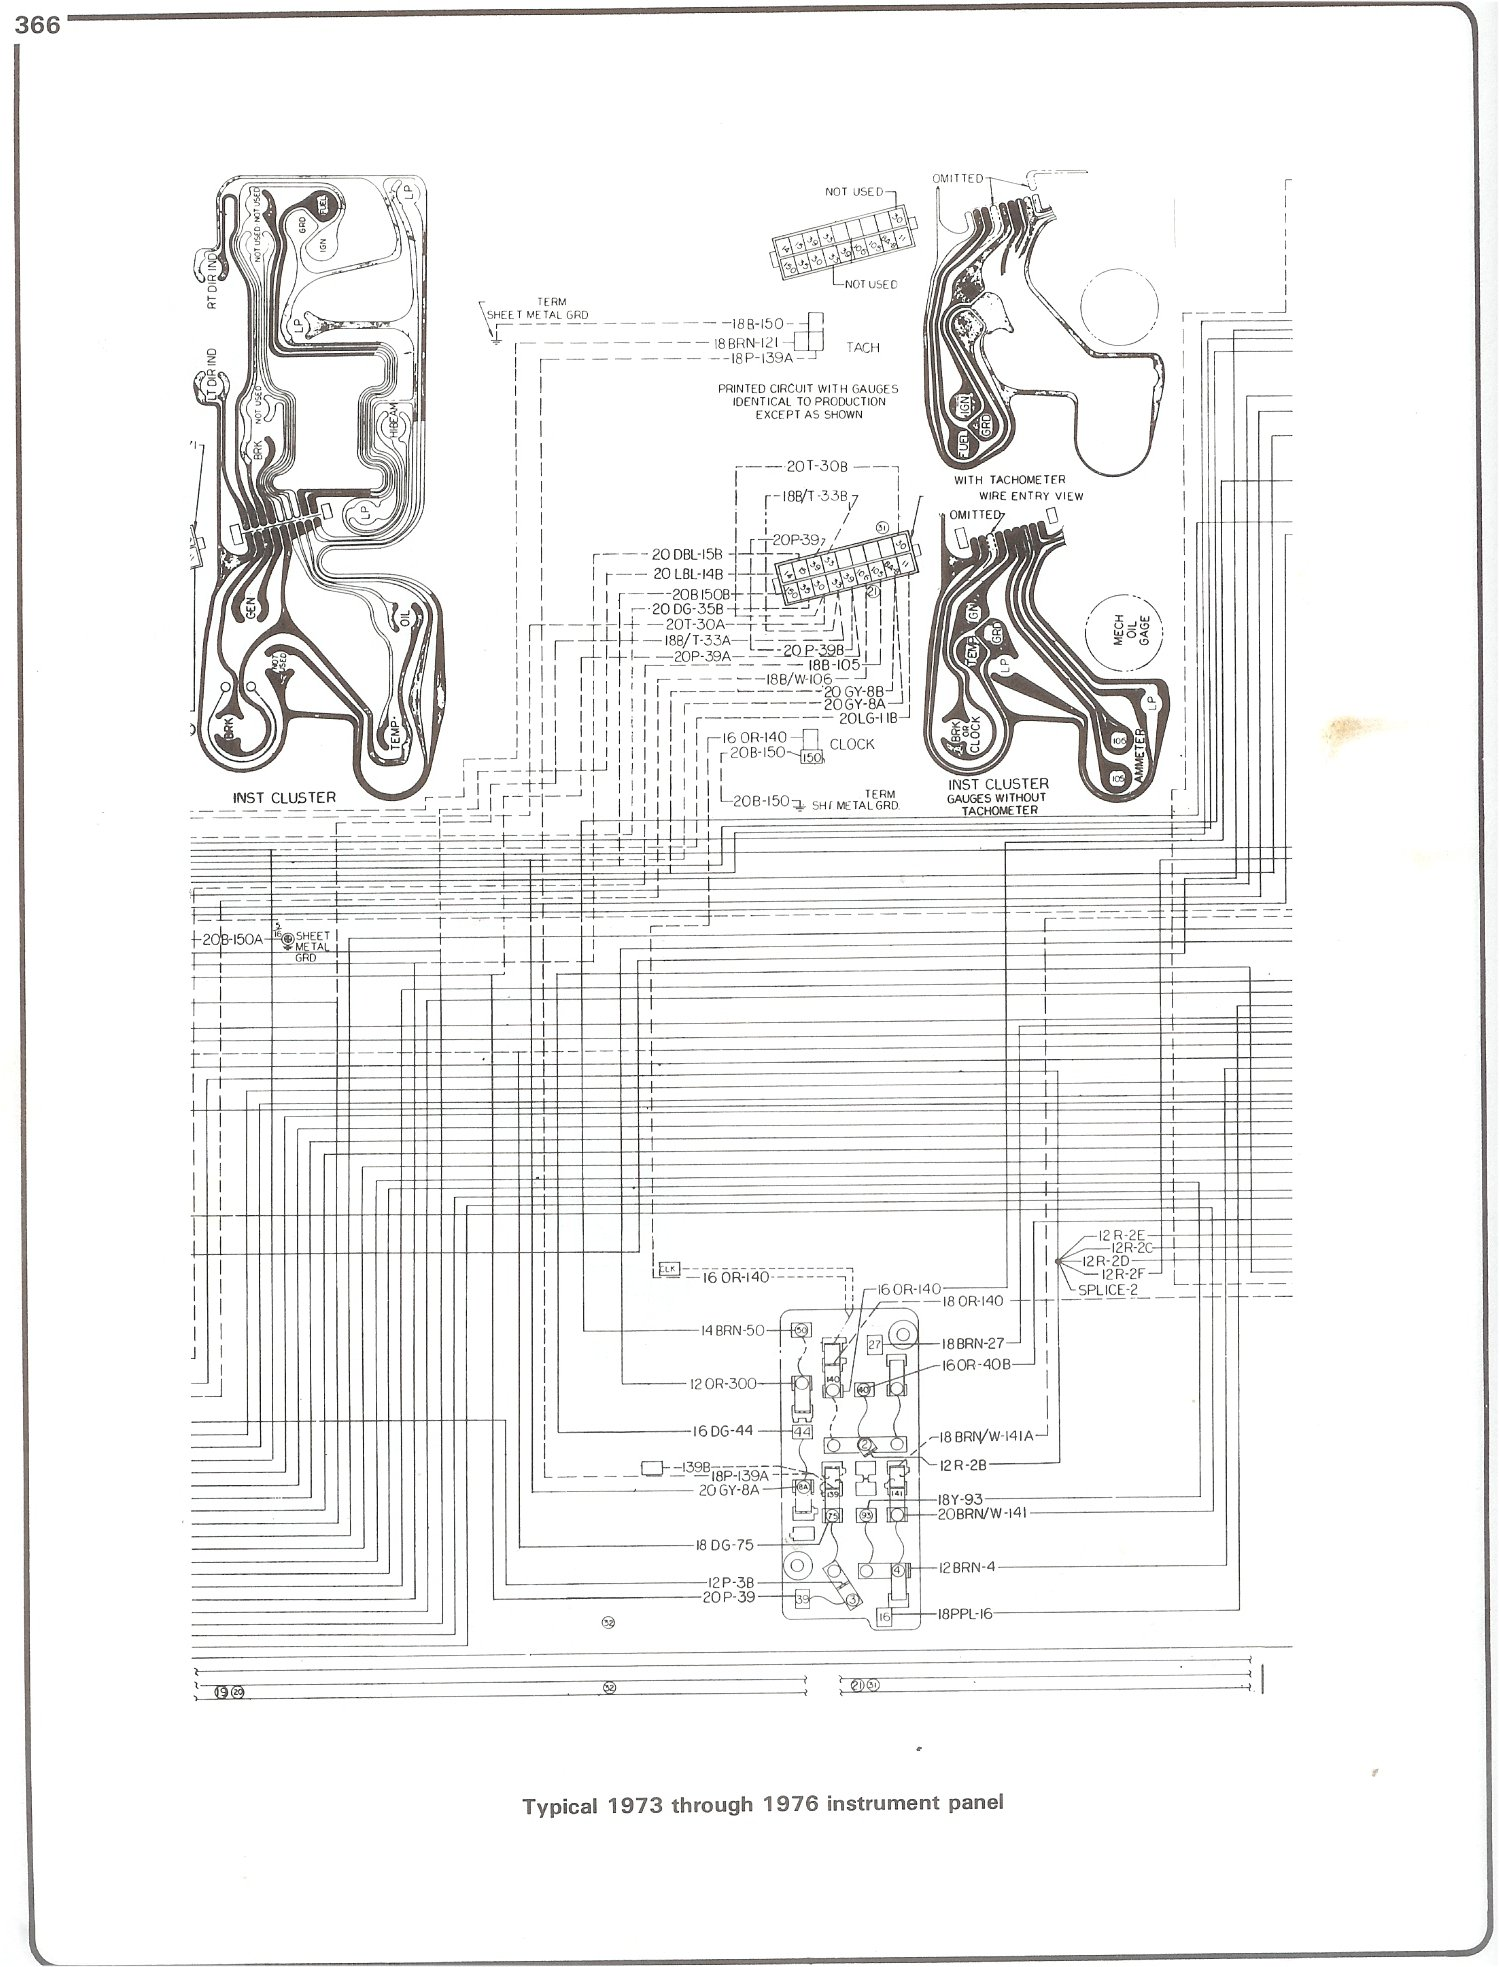 Chevy Instrument Cluster Wiring Diagram 1985 House Hei Distributor K10 Complete 73 87 Diagrams Rh Forum 87chevytrucks Com Pickup 1987 Truck